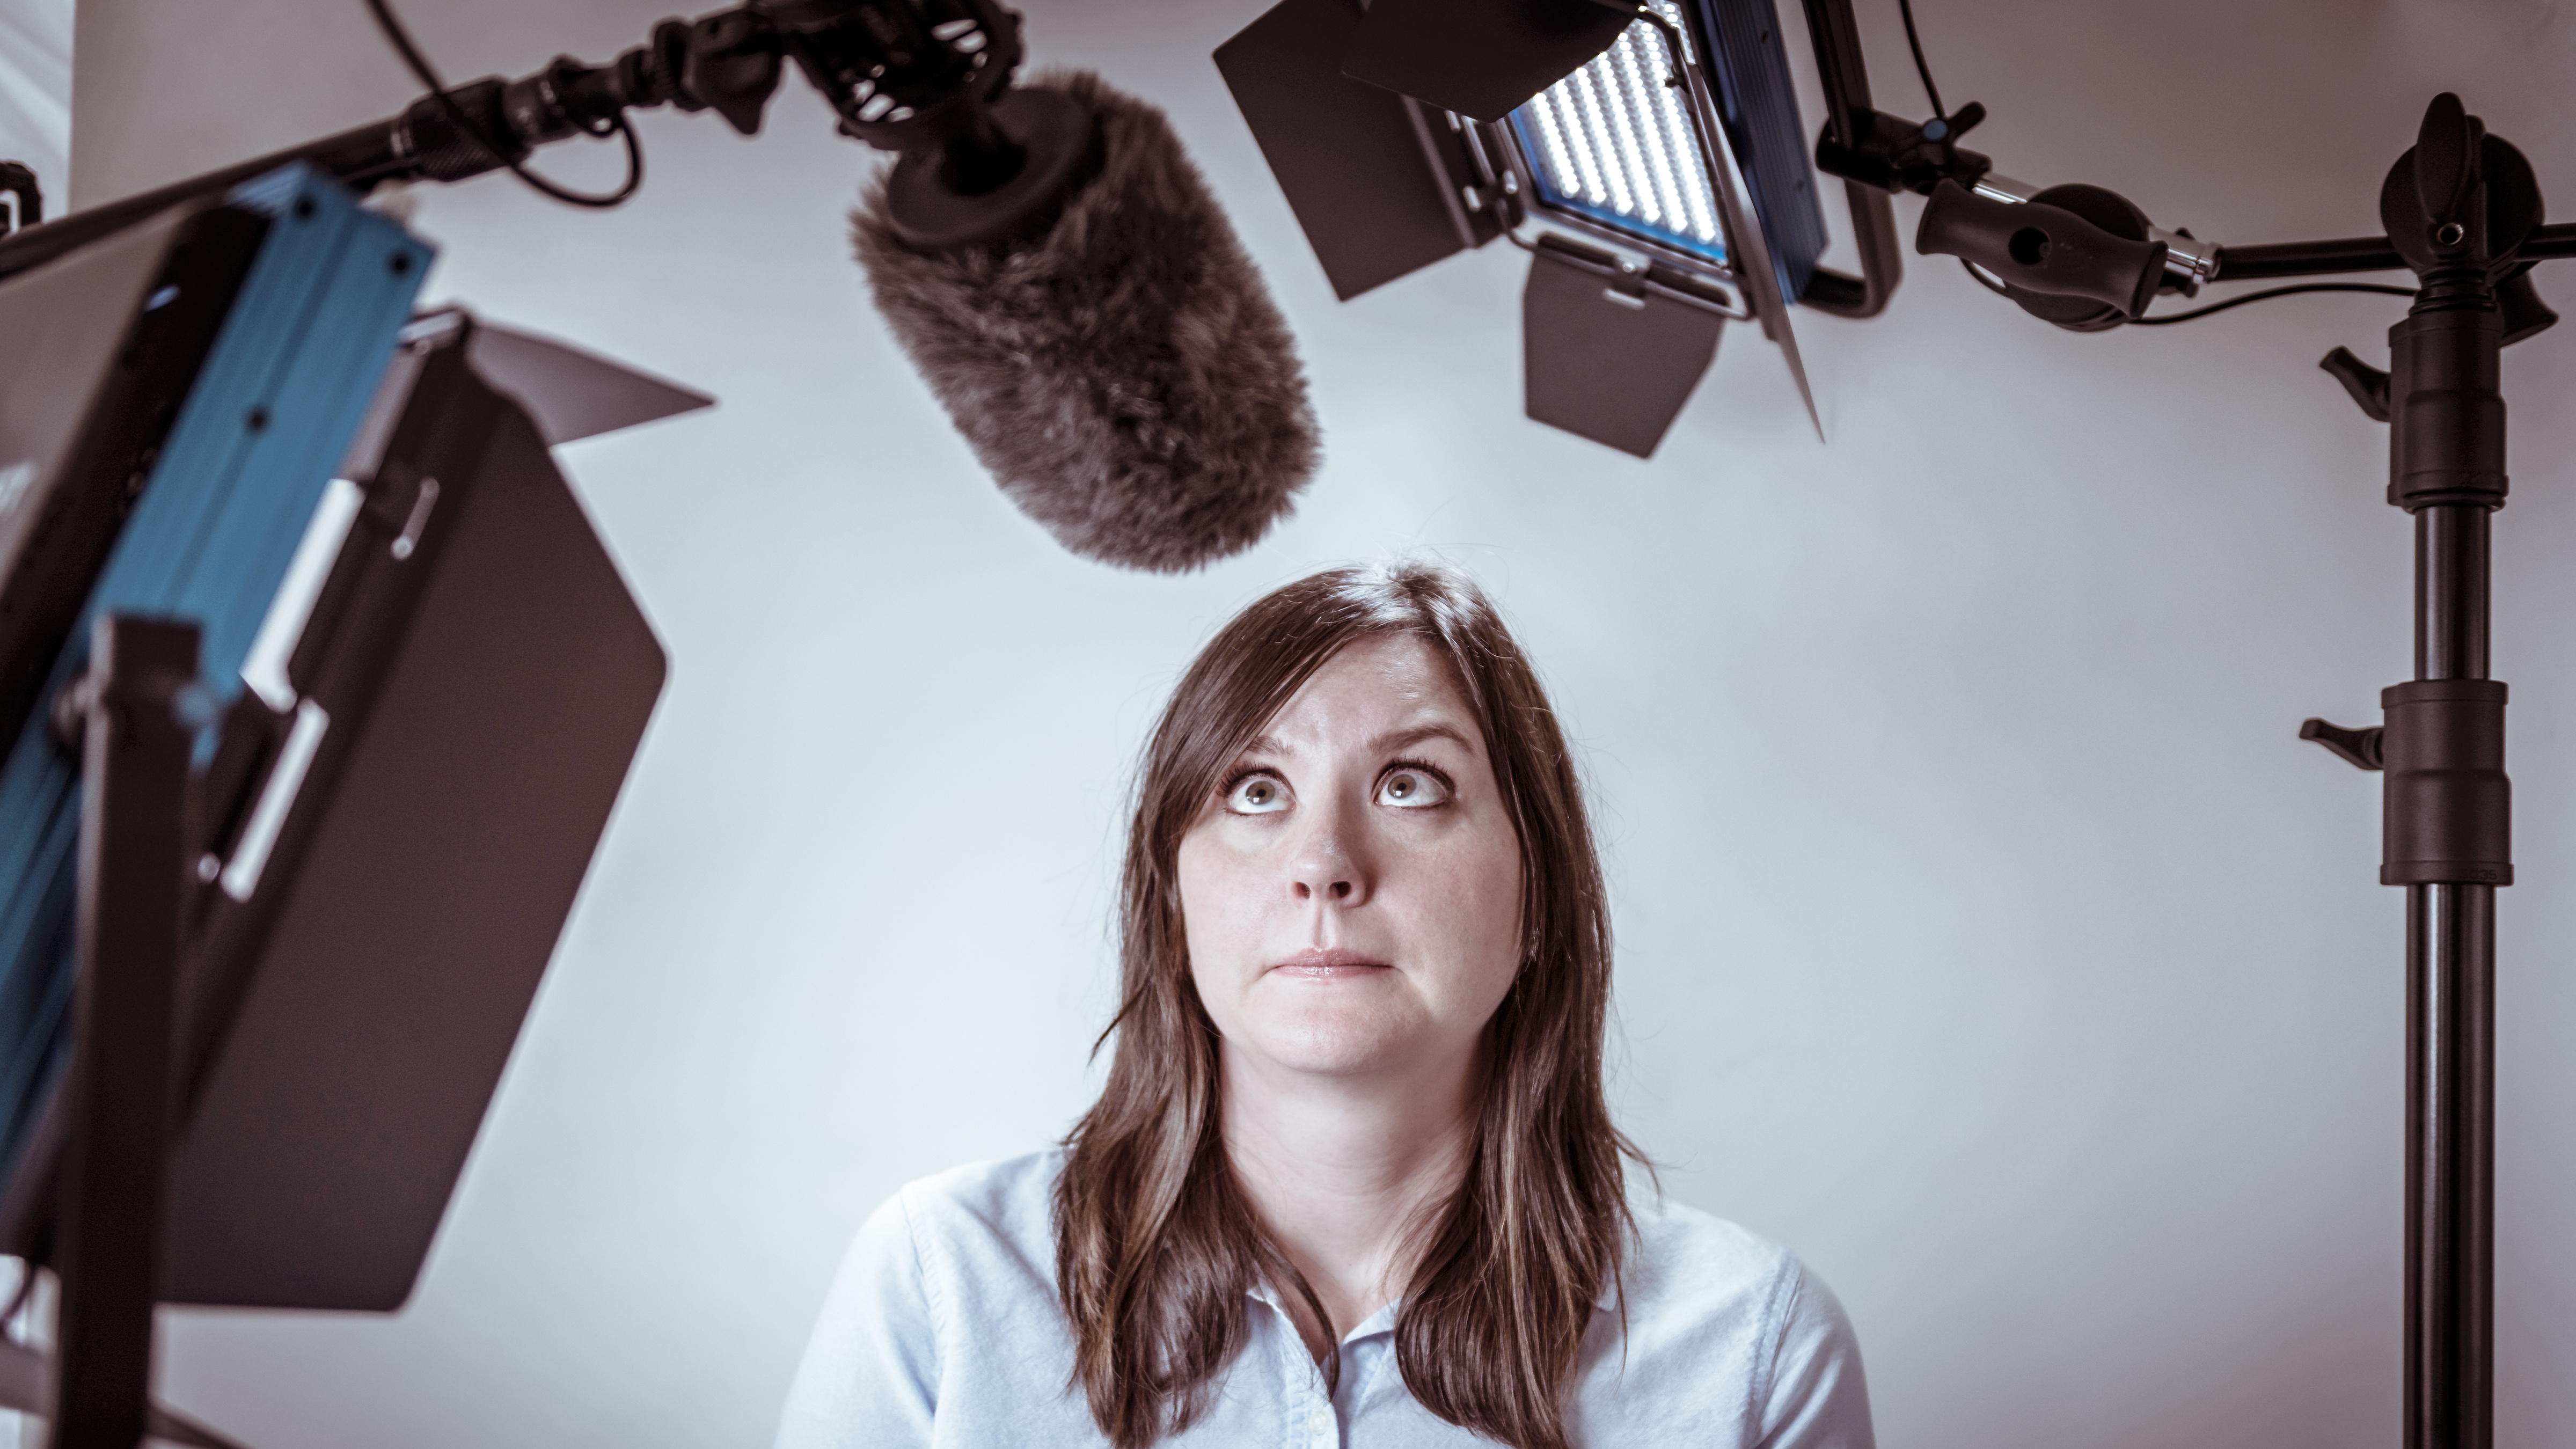 Woman looking worried at camera equipment that includes a microphone, lighting, and camera